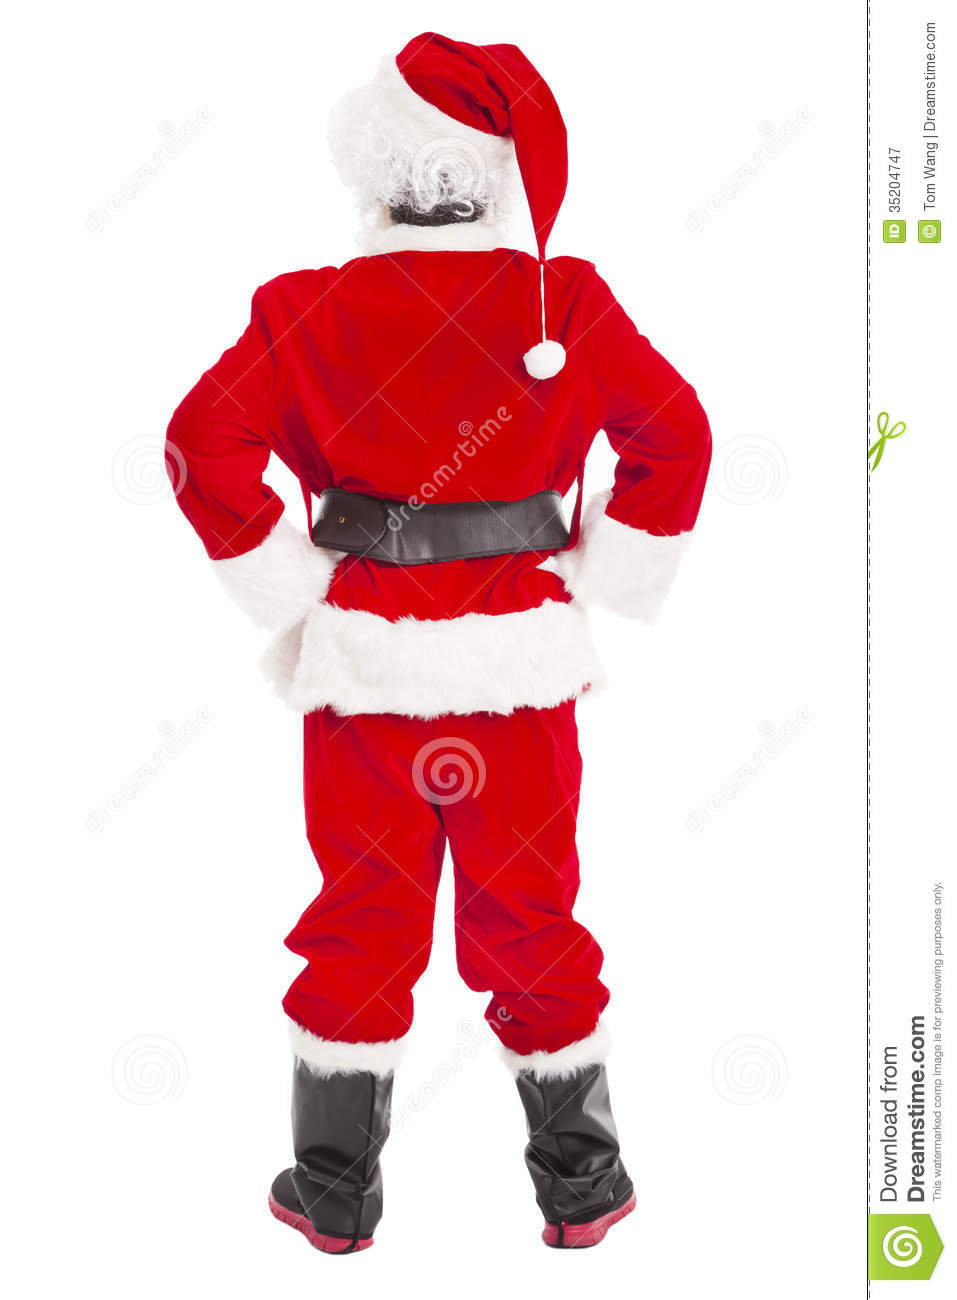 Santa Claus Standing And Back View Royalty Free Stock